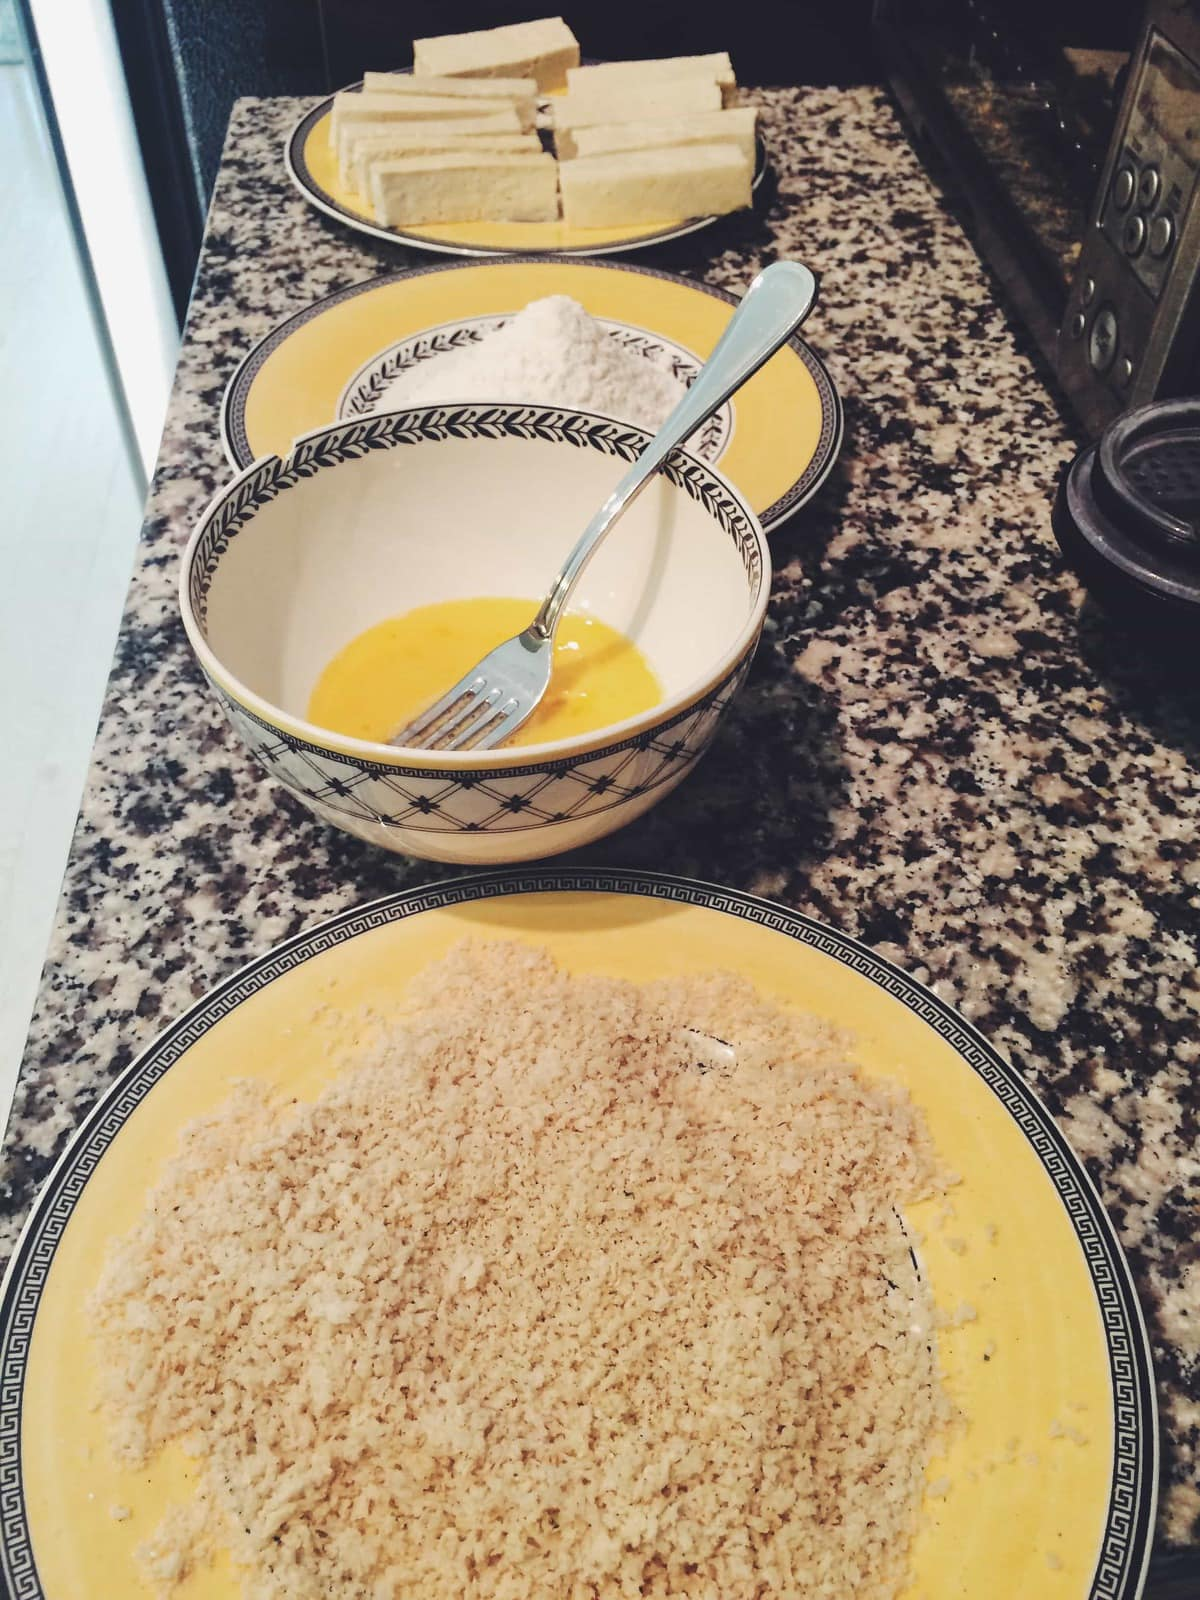 egg, panko crumbs, flour, tofu in assembly line